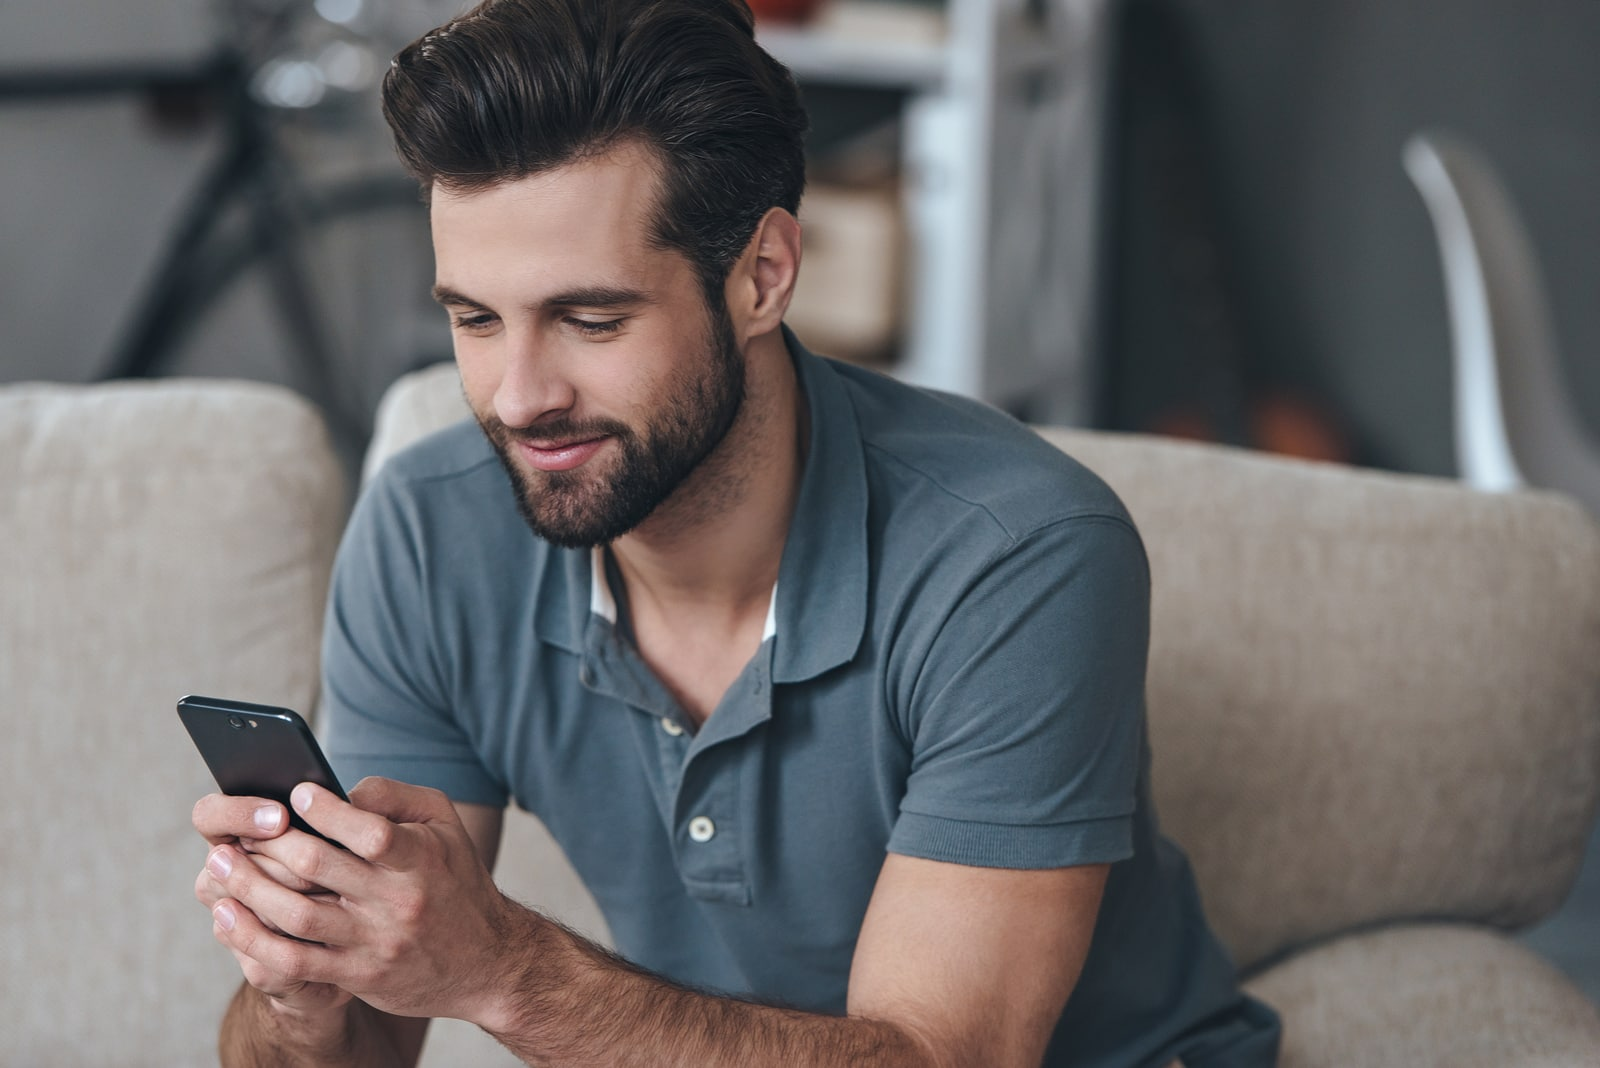 a man sits and keys on the phone